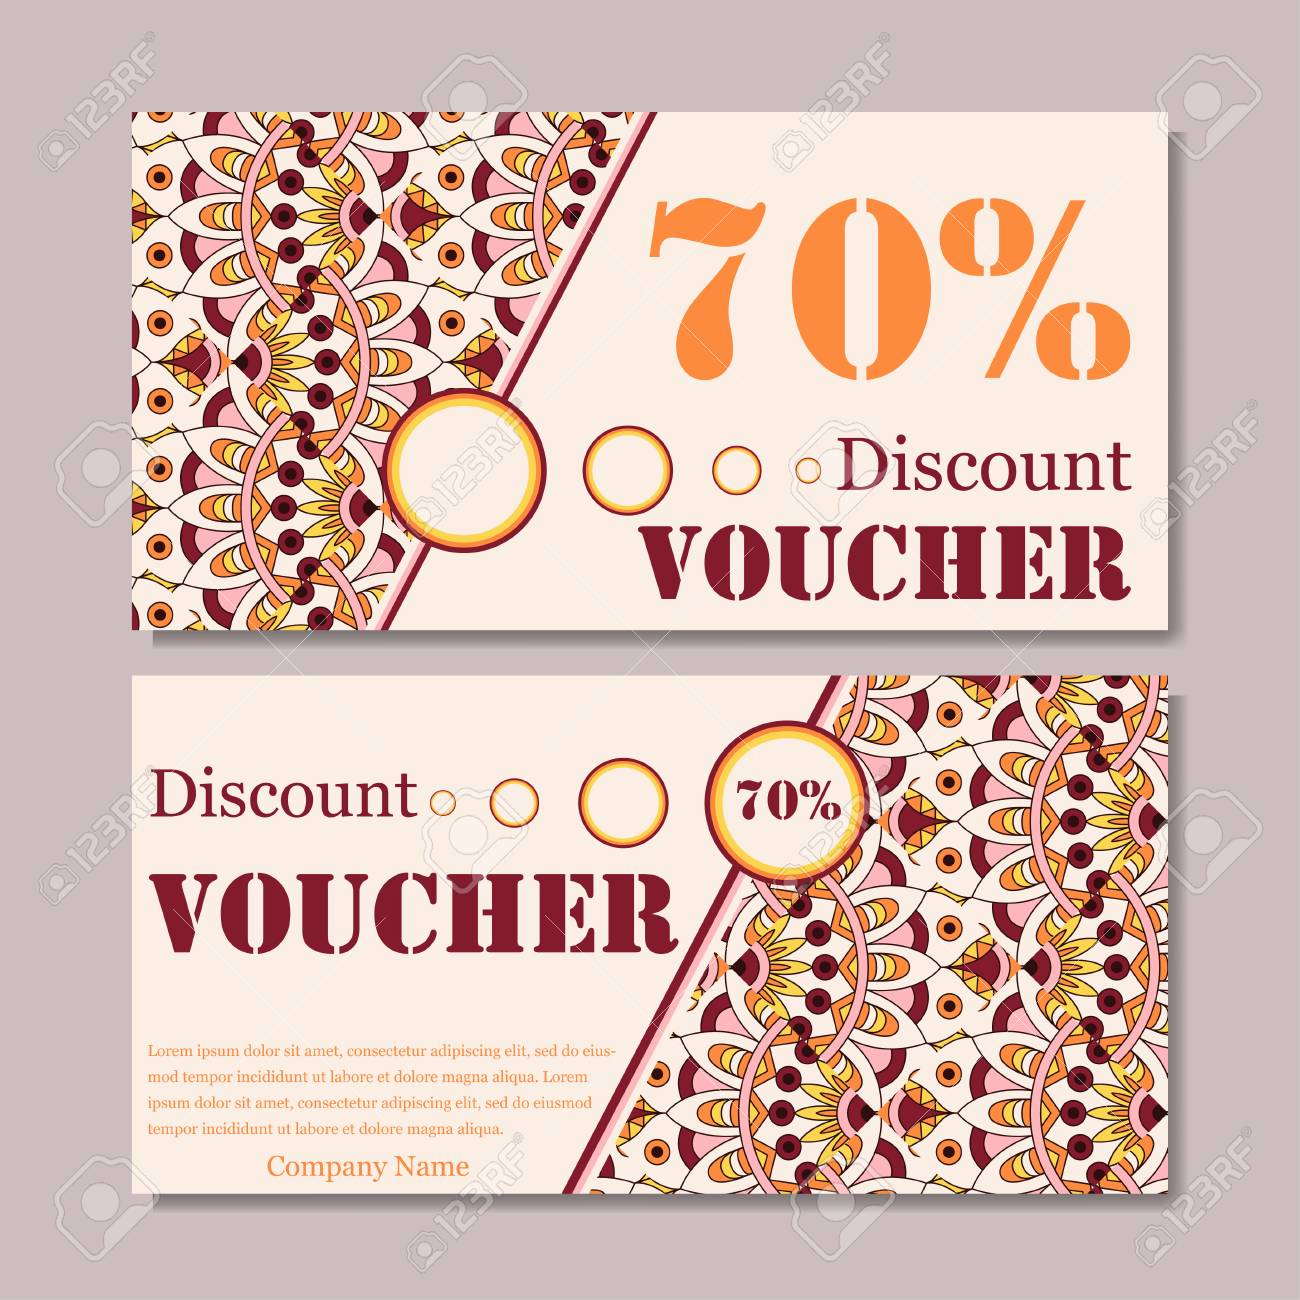 gift voucher template with mandala design certificate for sport or yoga center magazine or